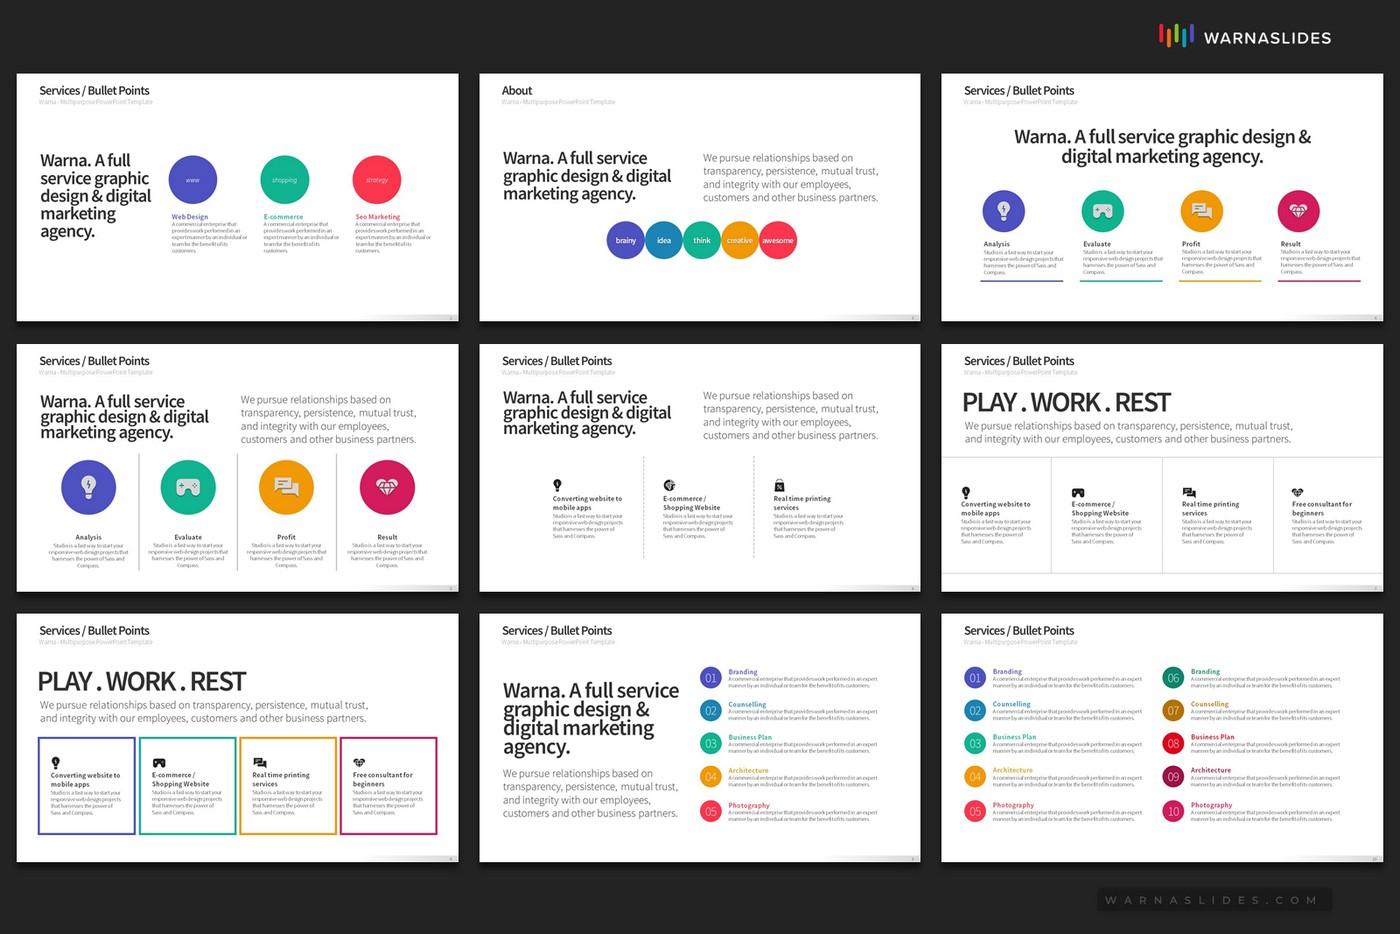 Services-SEO-Management-Bullet-Points-PowerPoint-Template-for-Business-Pitch-Deck-Professional-Creative-PowerPoint-Icons-006